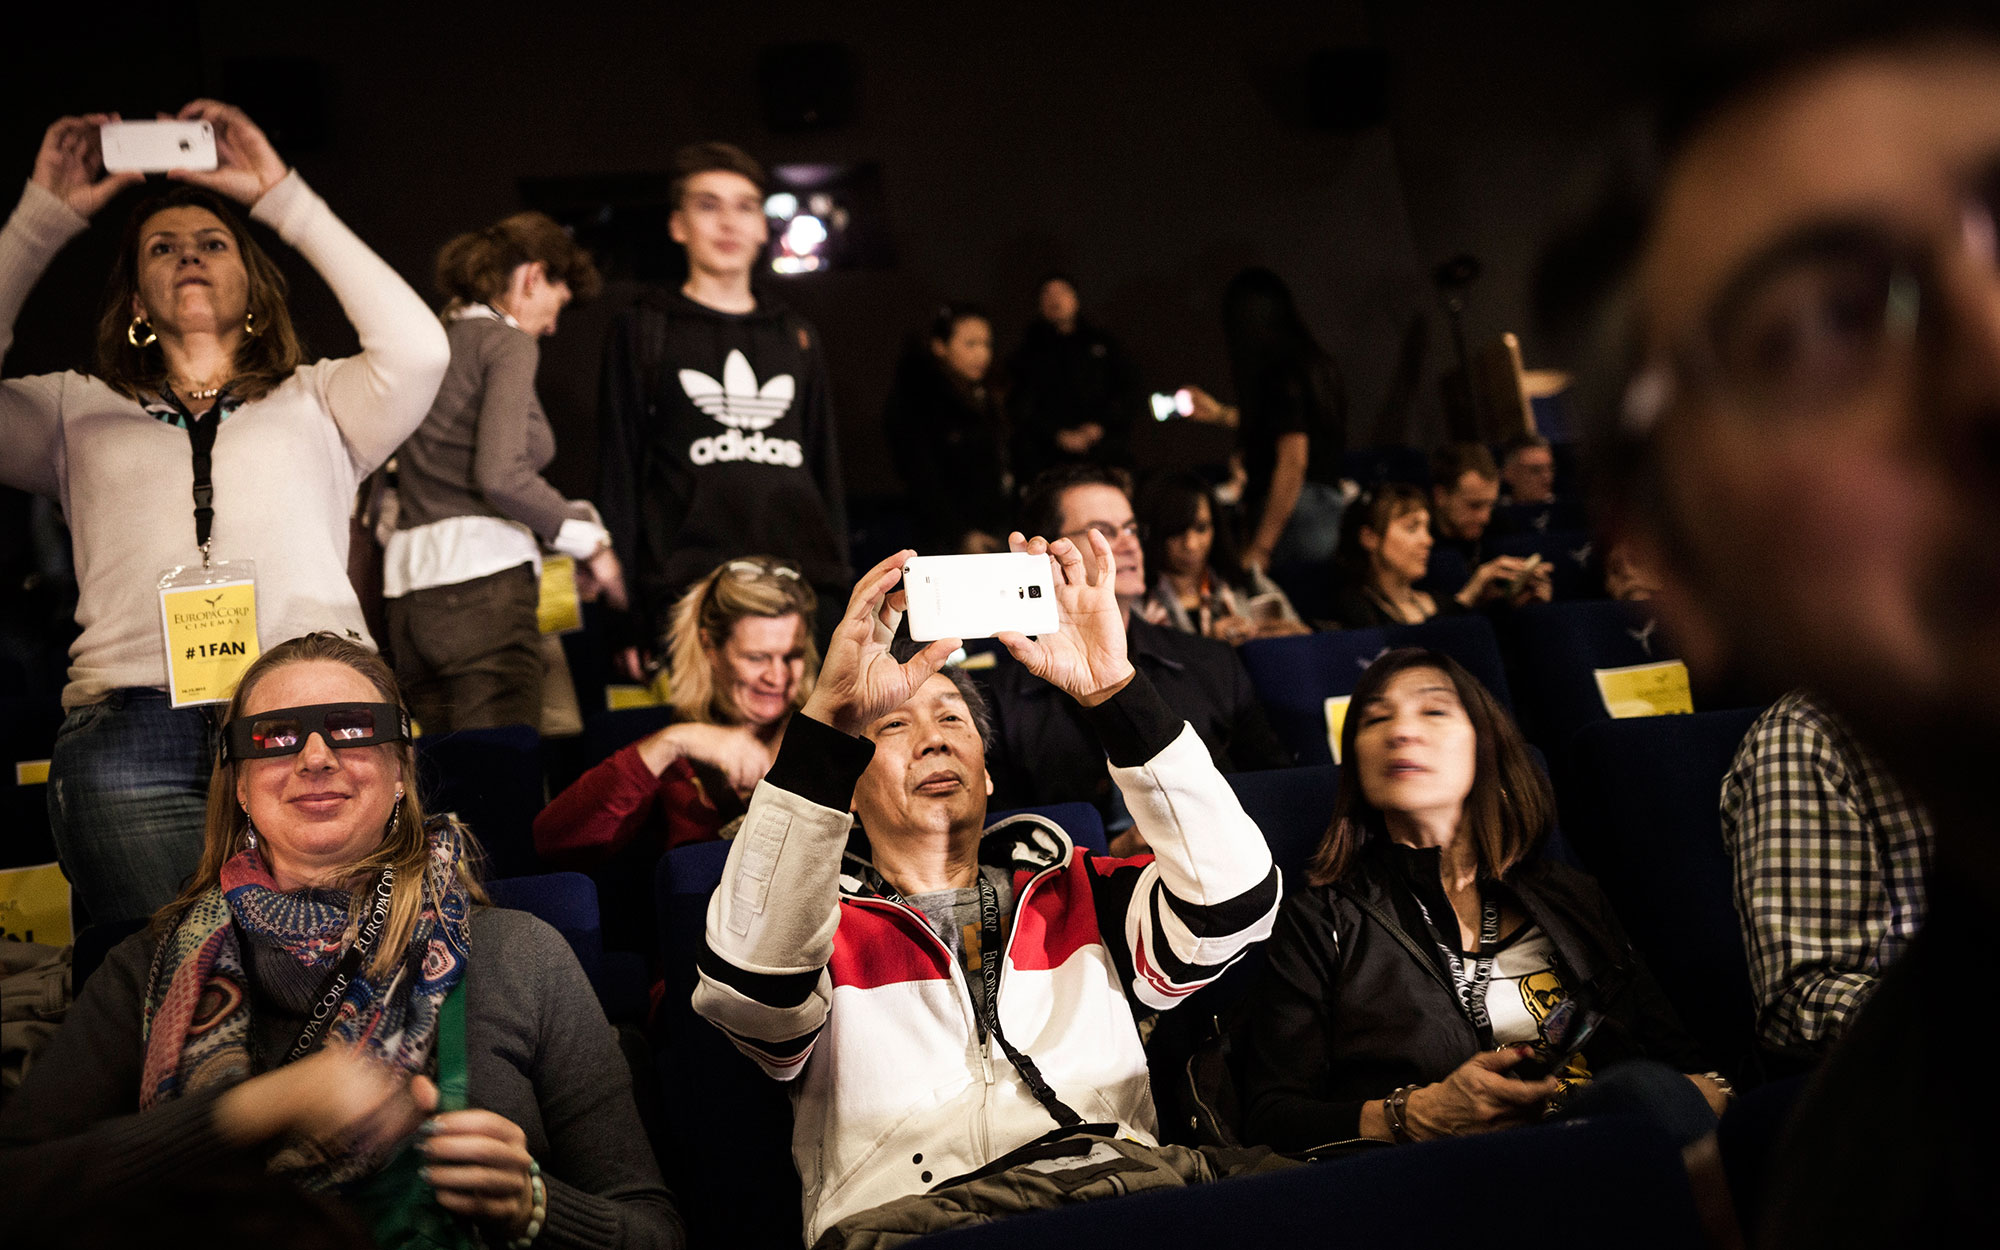 63 Star Wars fans from the United States were offered the opportunity of flying into Paris with Air France to see the latest Star Wars movie - The Force Awakens - 2 days before it goes on general release across the world.Photo (c) Ed Alcock / M.Y.O.P. 1